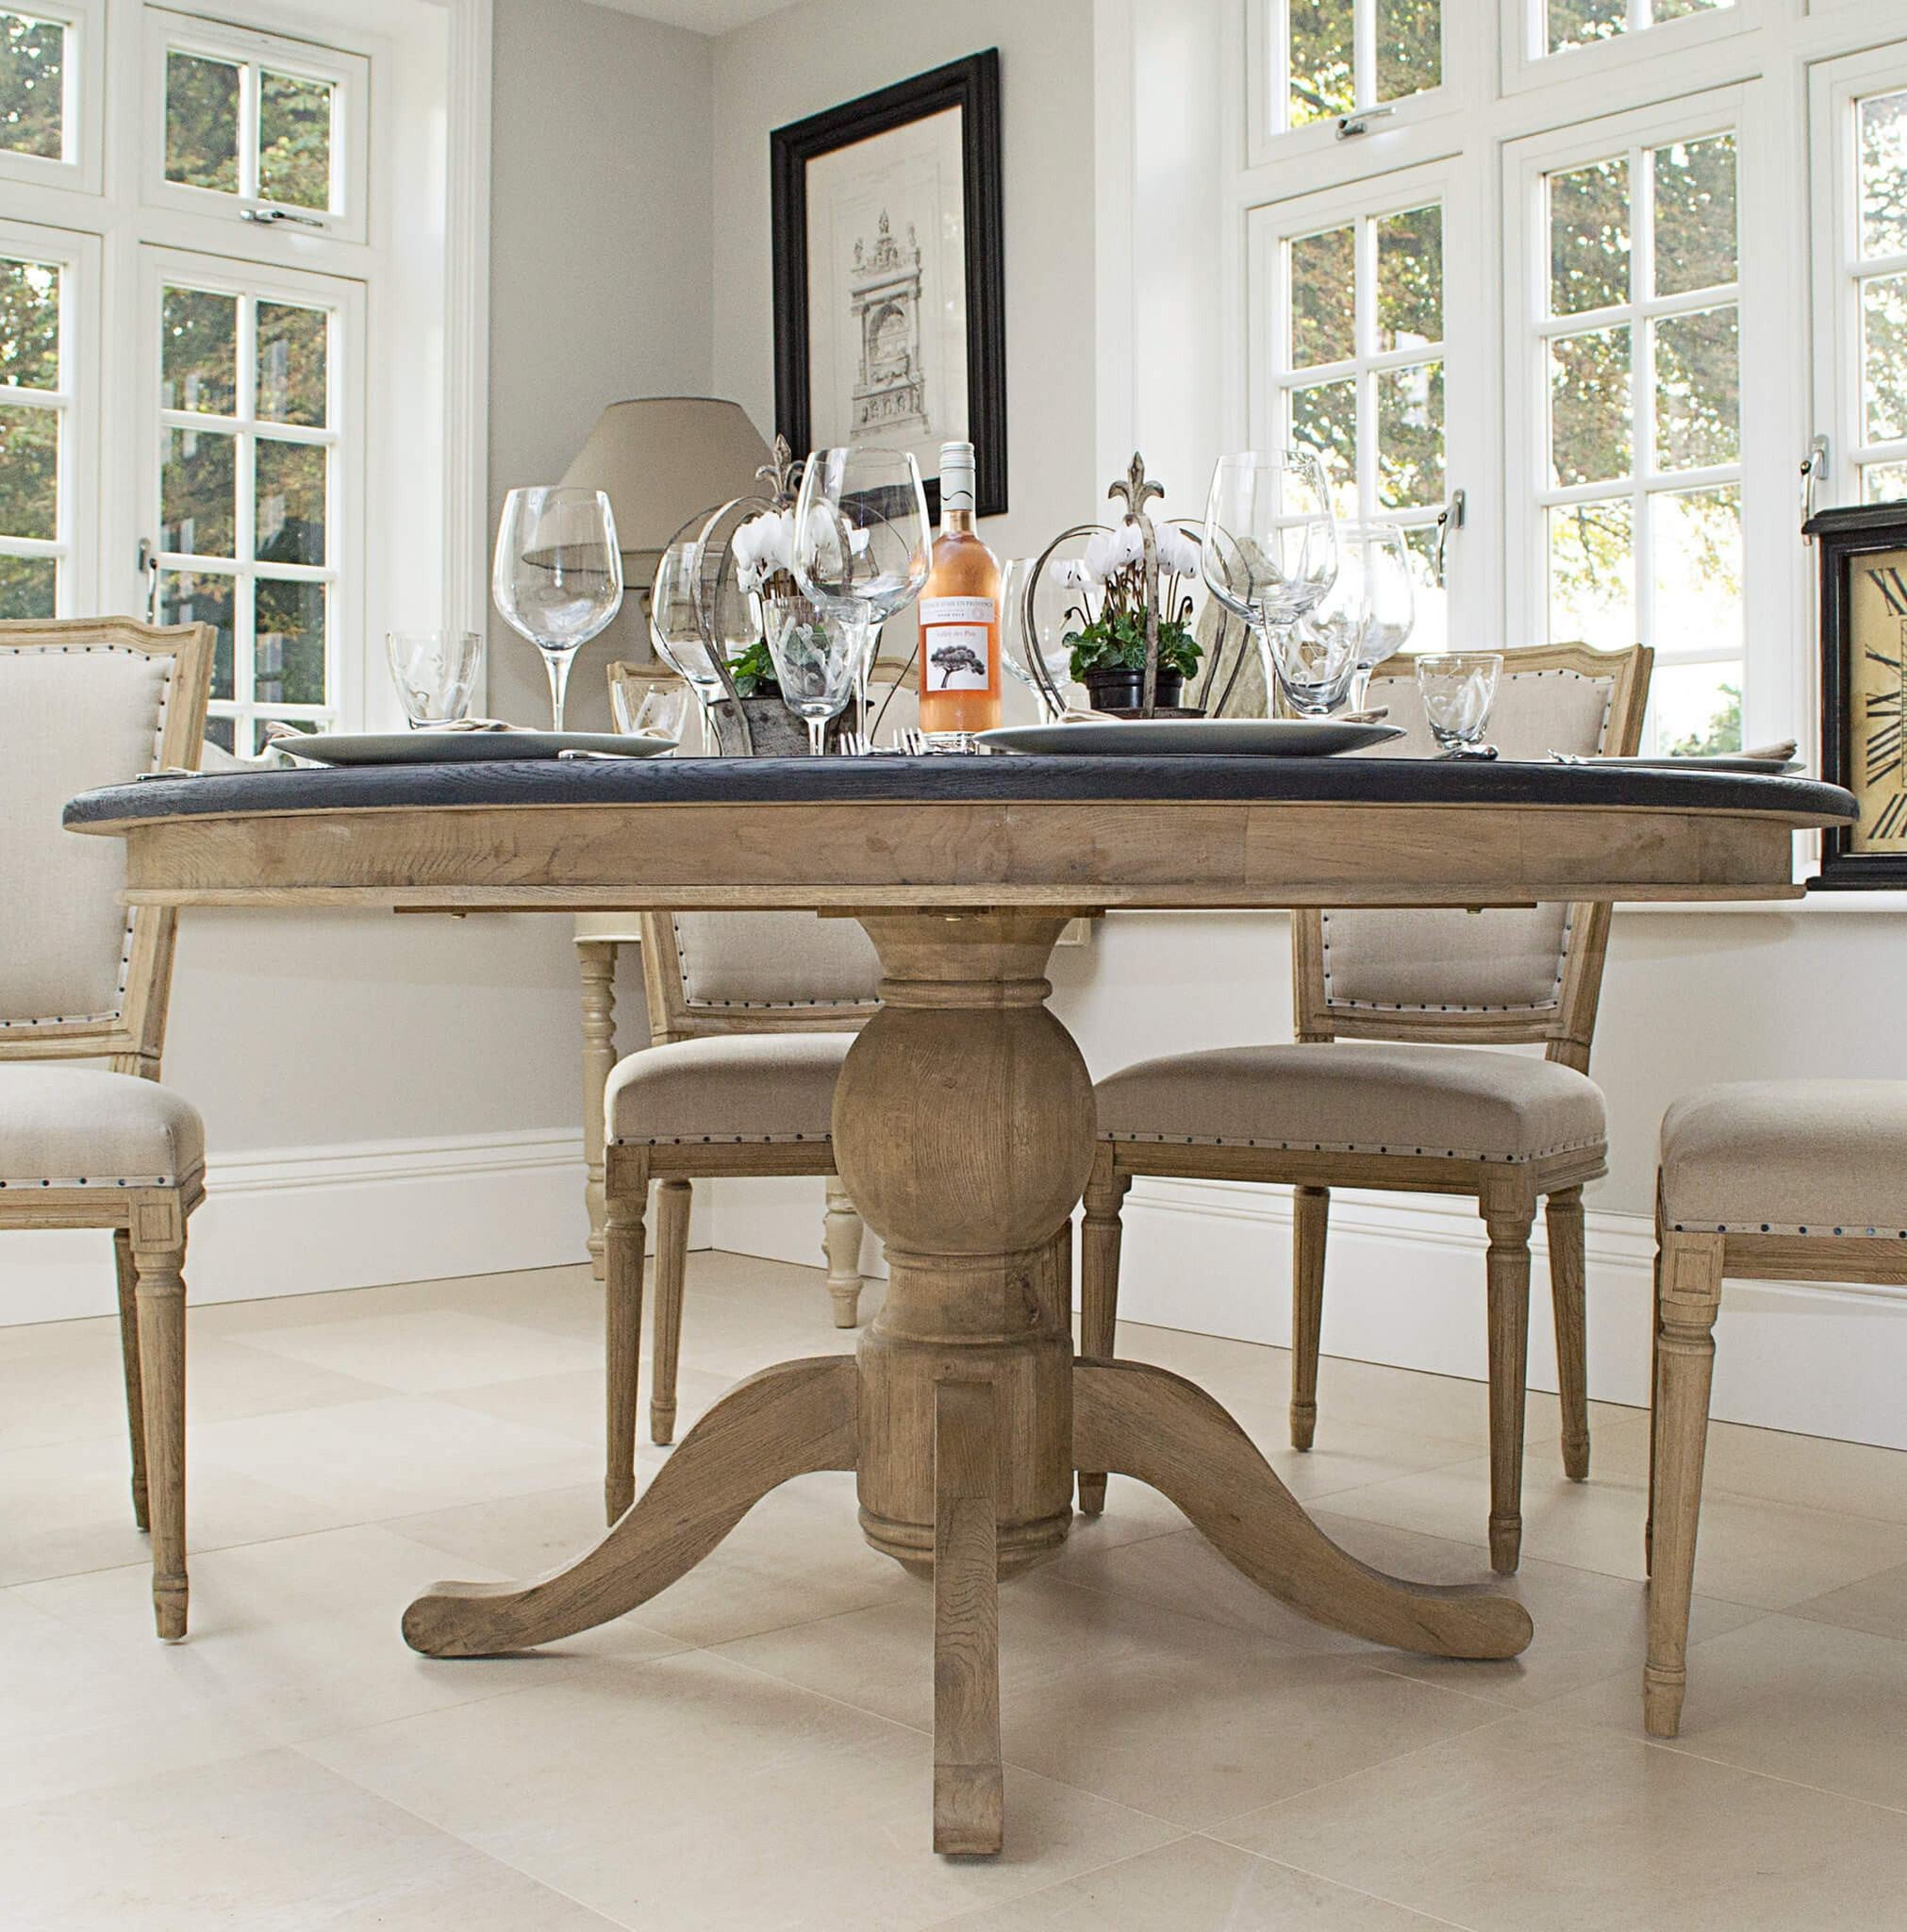 Painted Round Kitchen Table And Chairs: Round Oak Painted Dining Table